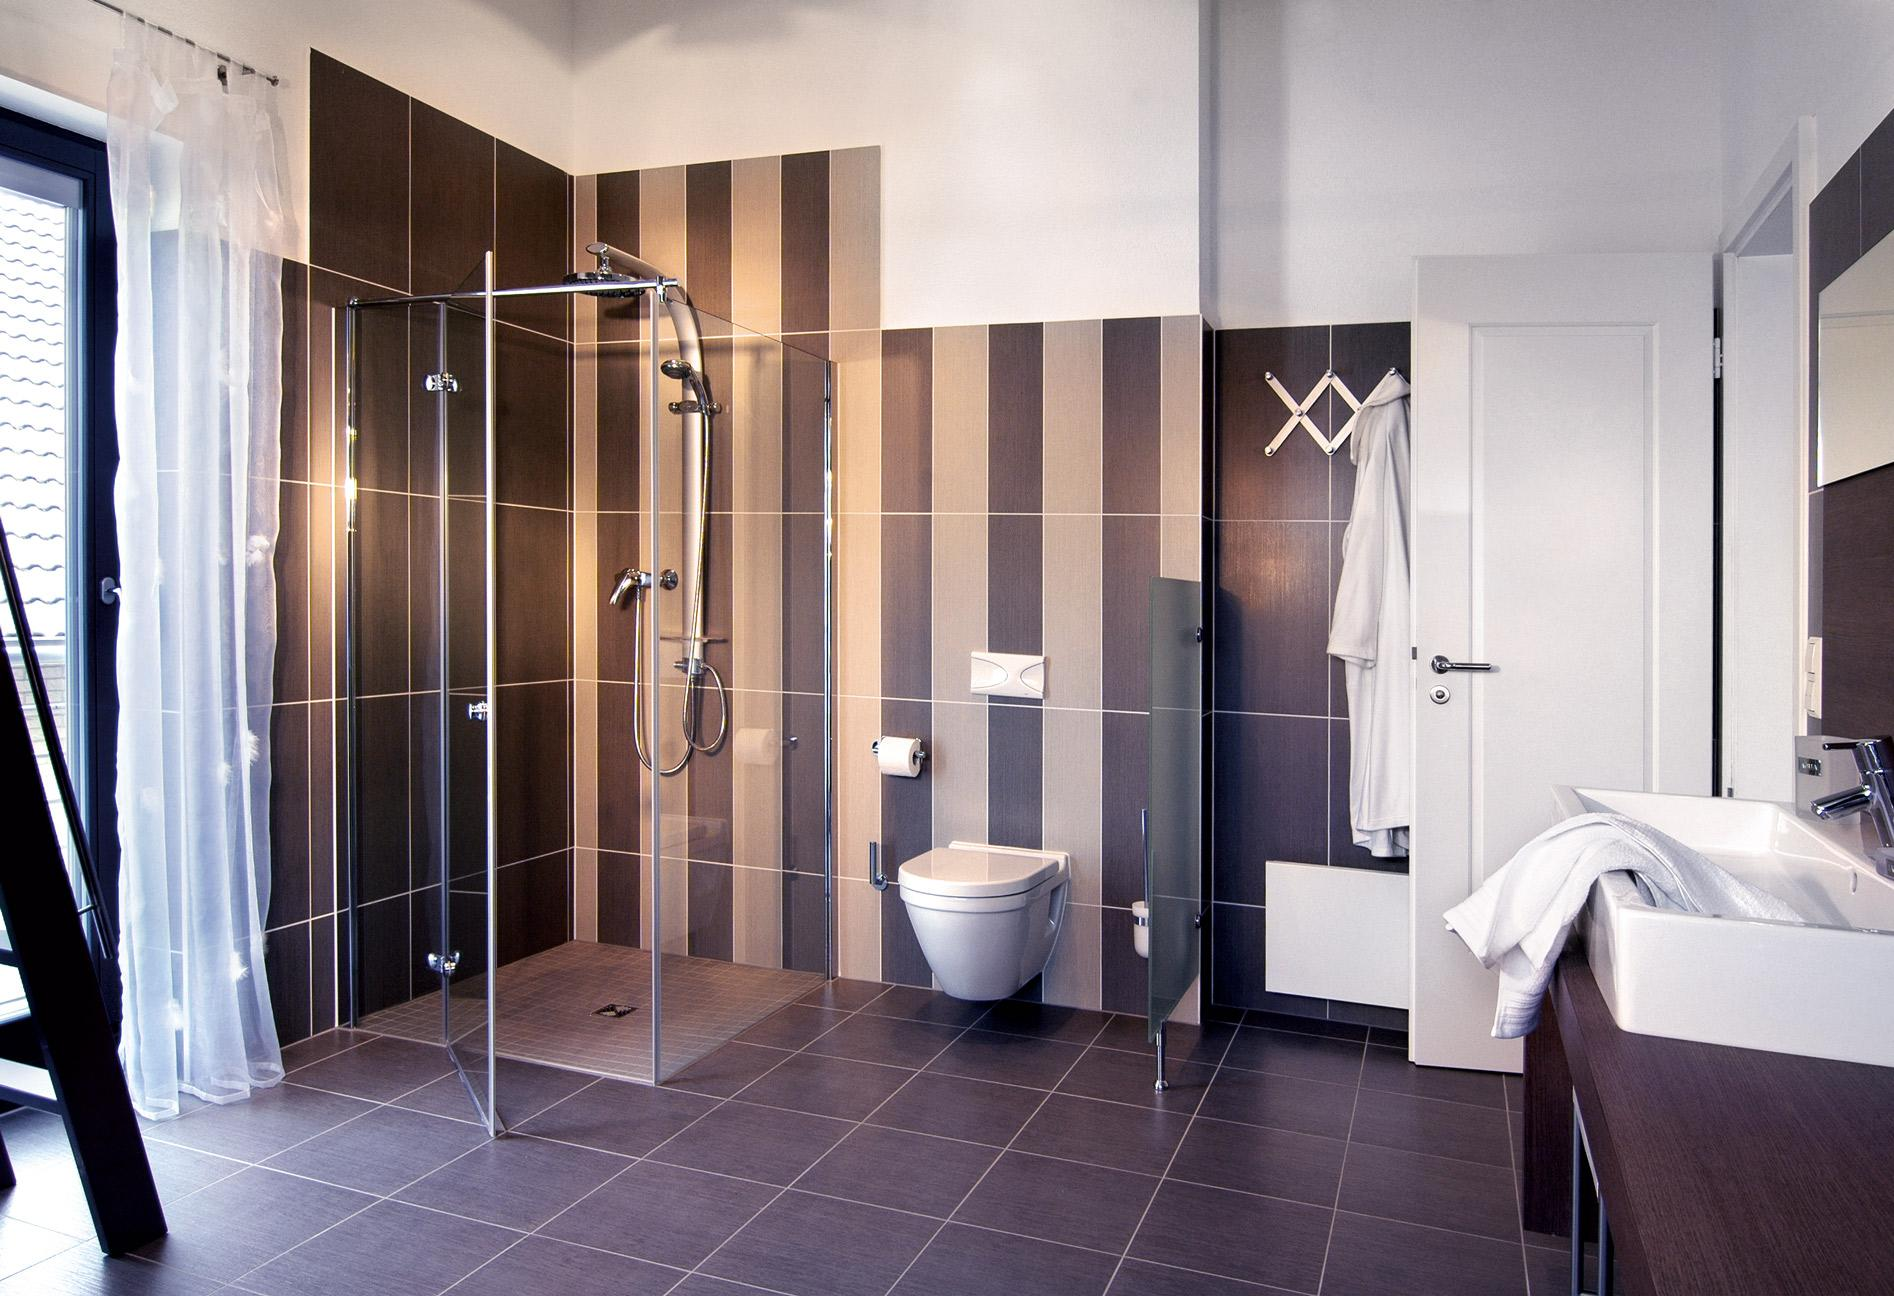 Large bathroom with dark tiles